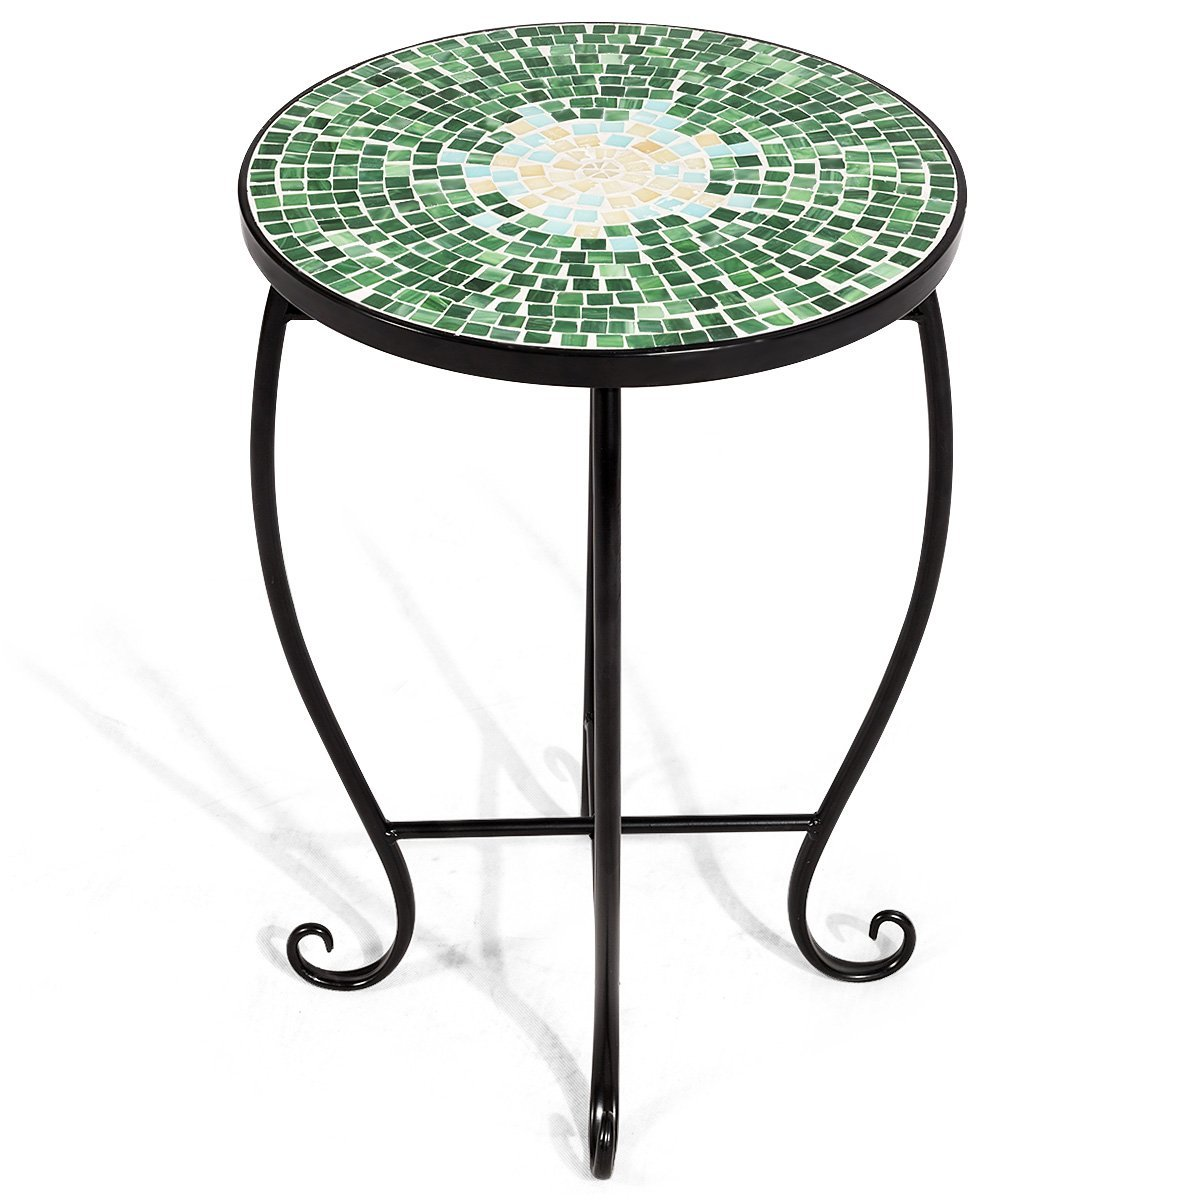 round glass accent table find top get quotations giantex mosaic side patio plant stand porch beach theme balcony back deck pool knobs wooden lamp modern buffet outdoor target